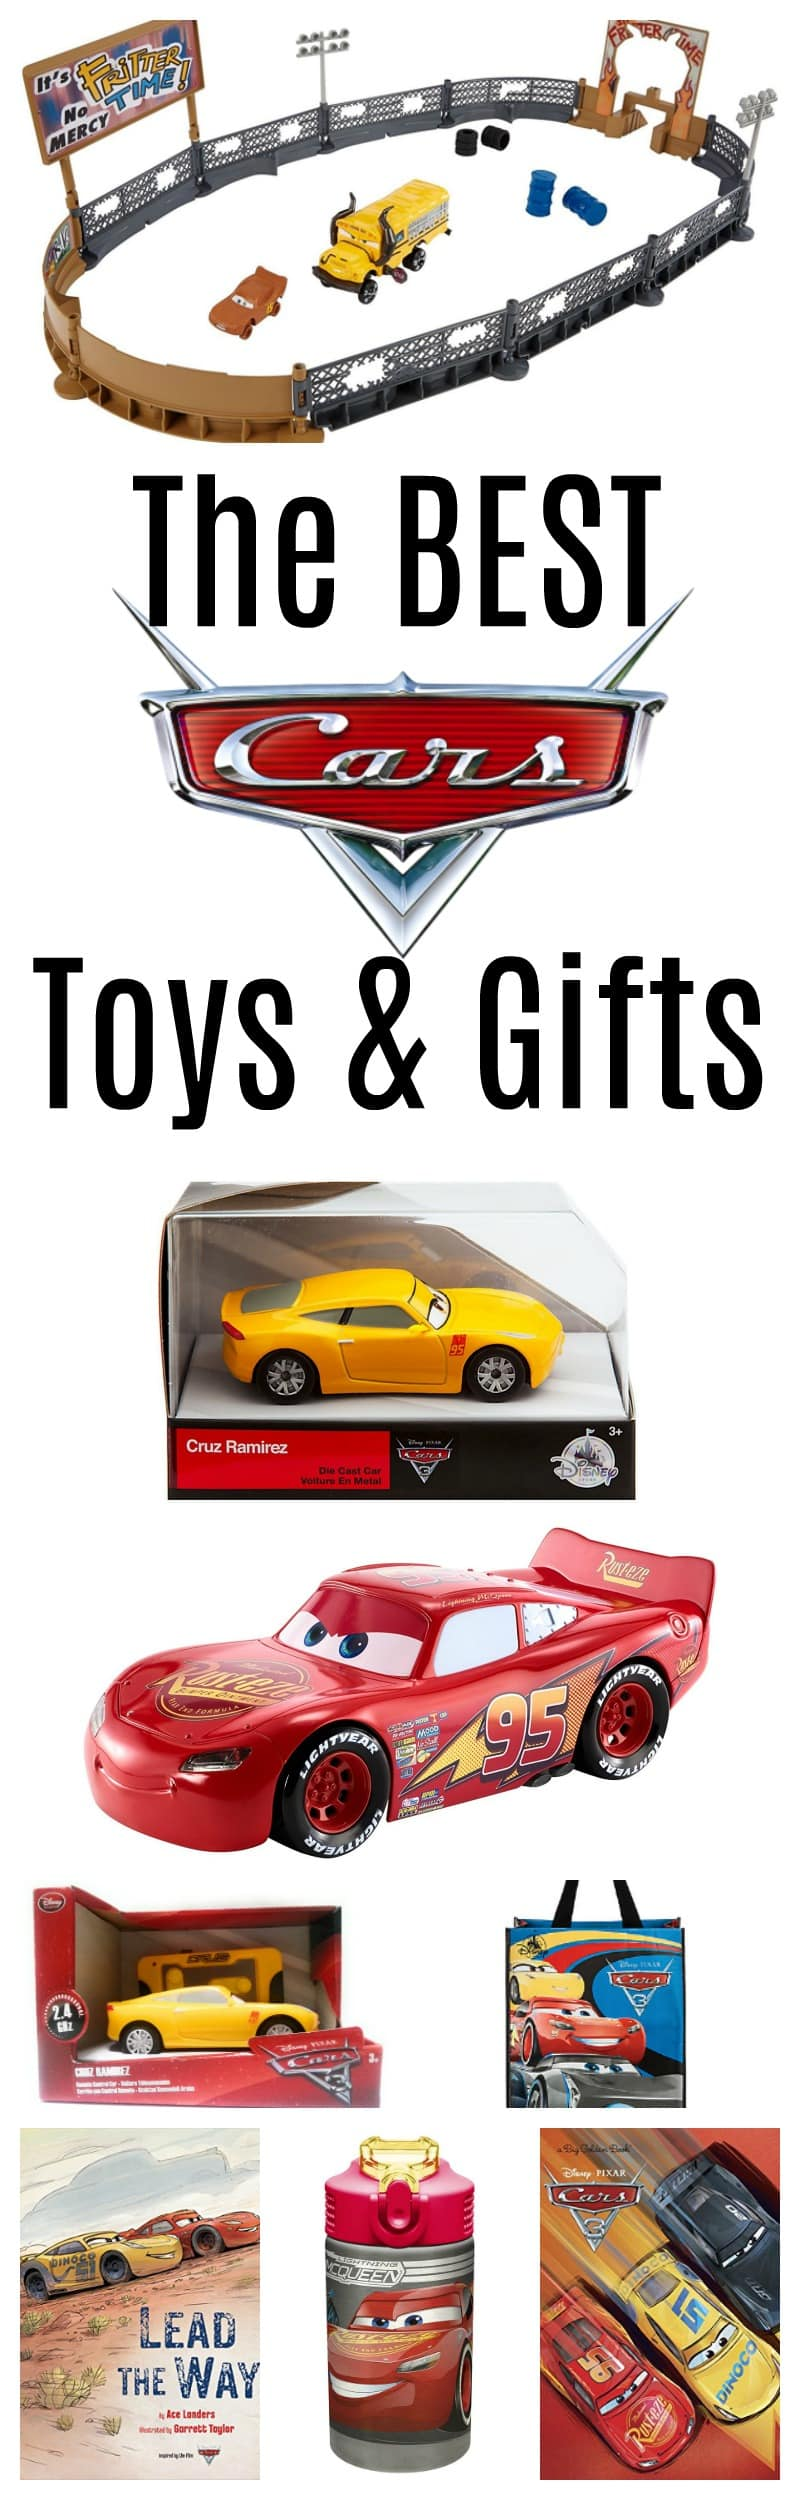 The BEST New Cars 3 Toys & Disney Play Days